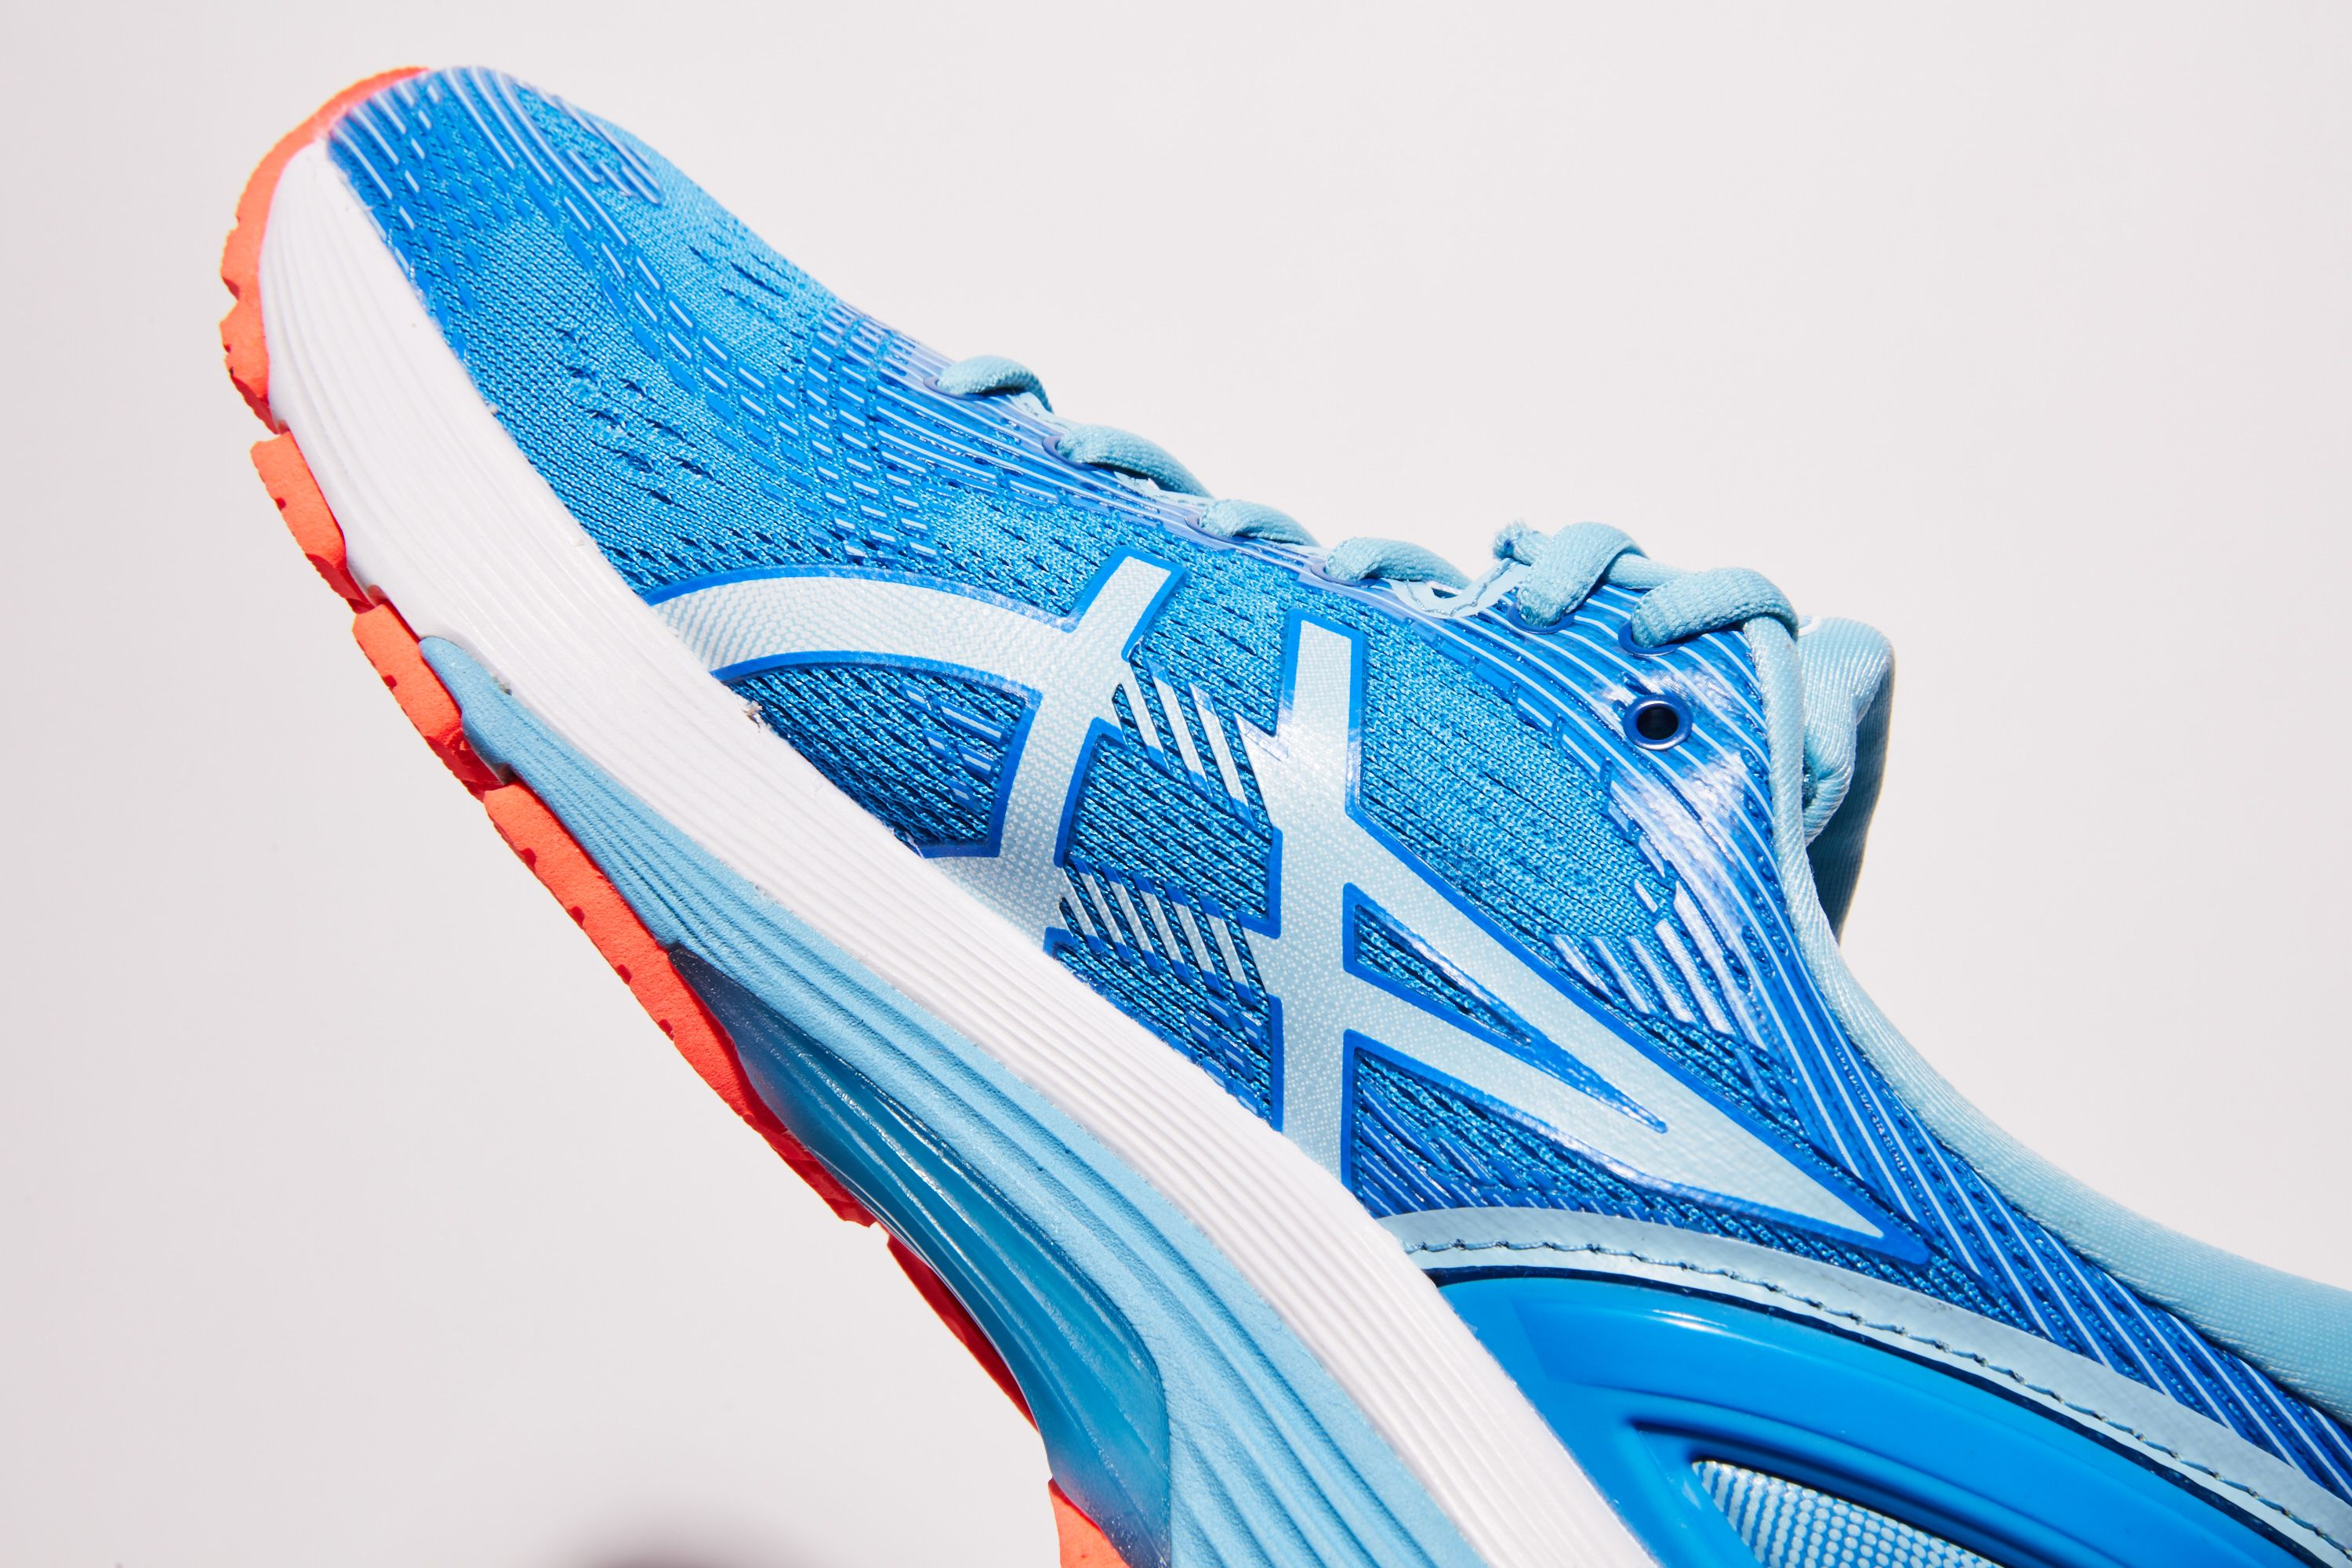 Asics Gel Nimbus 21 Review — Cushioned Running Shoes